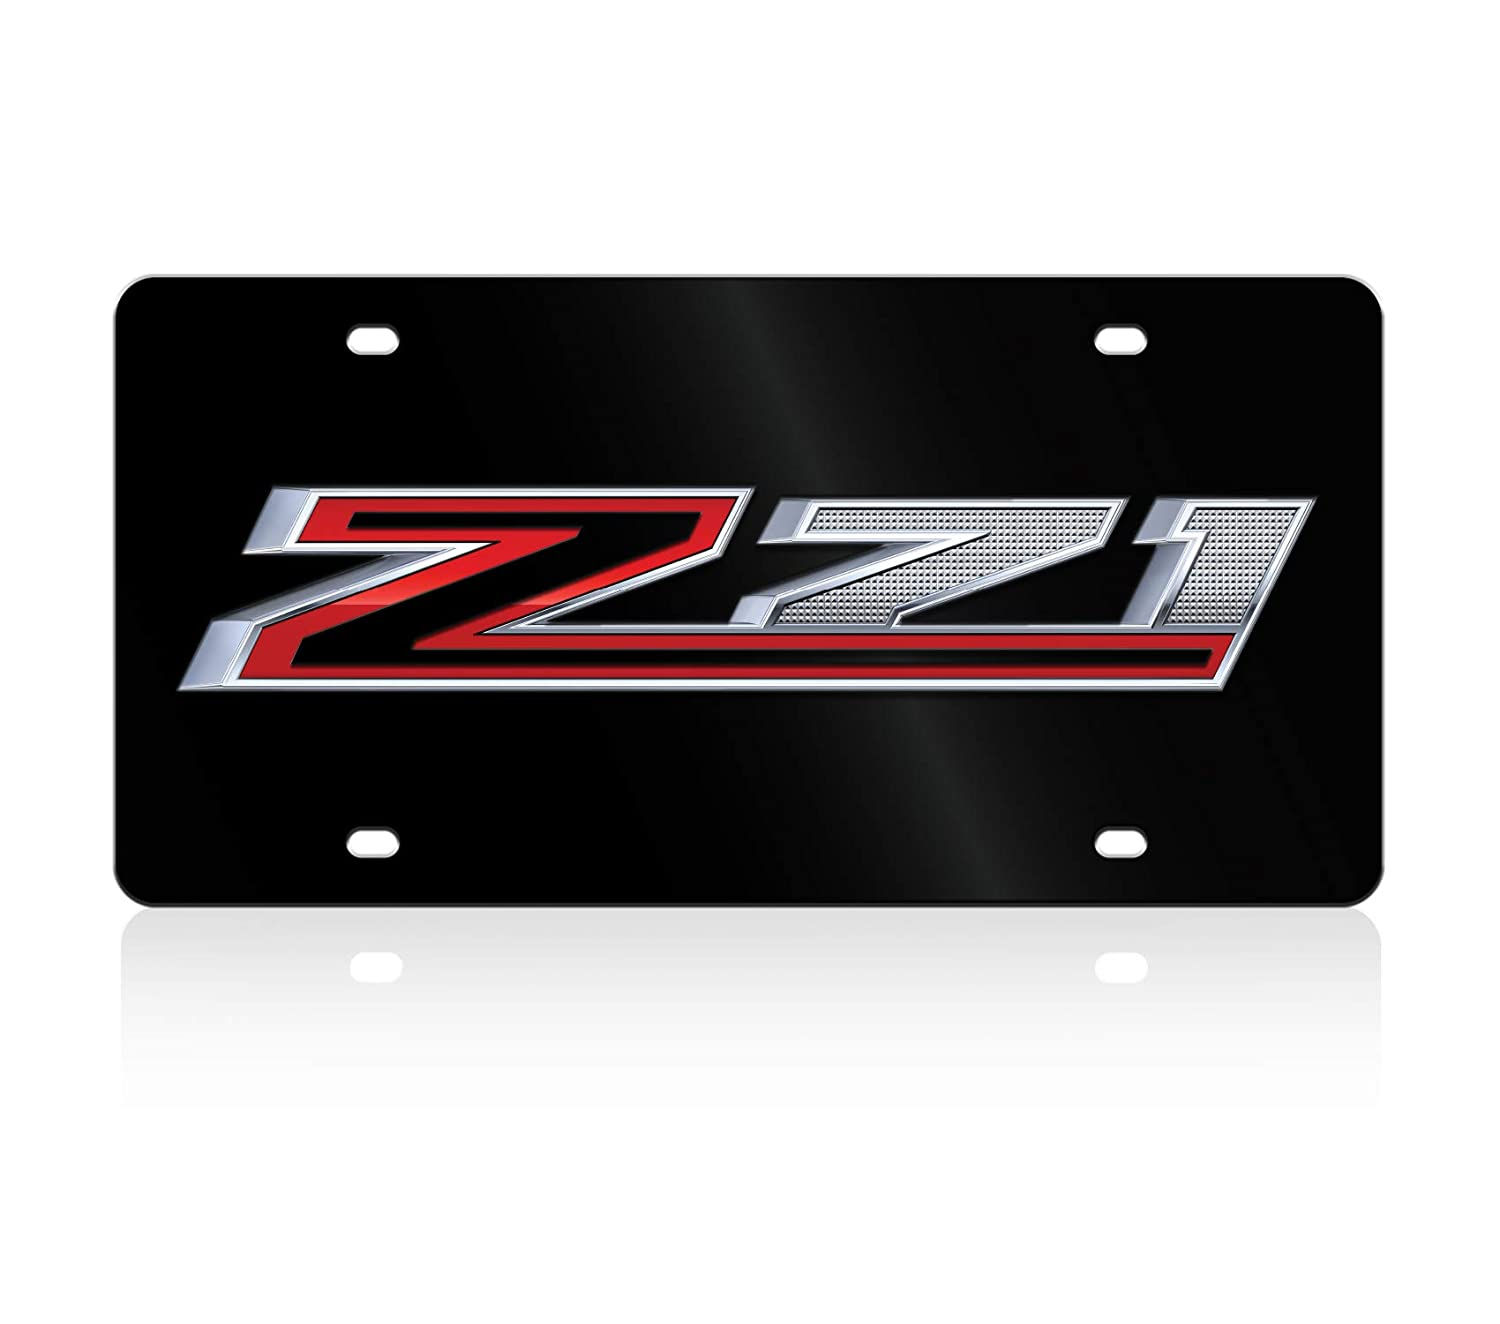 Compatible with 2019 Chevrolet Z71 Lazer-Tag Current Eurosport Daytona Acrylic License Plate